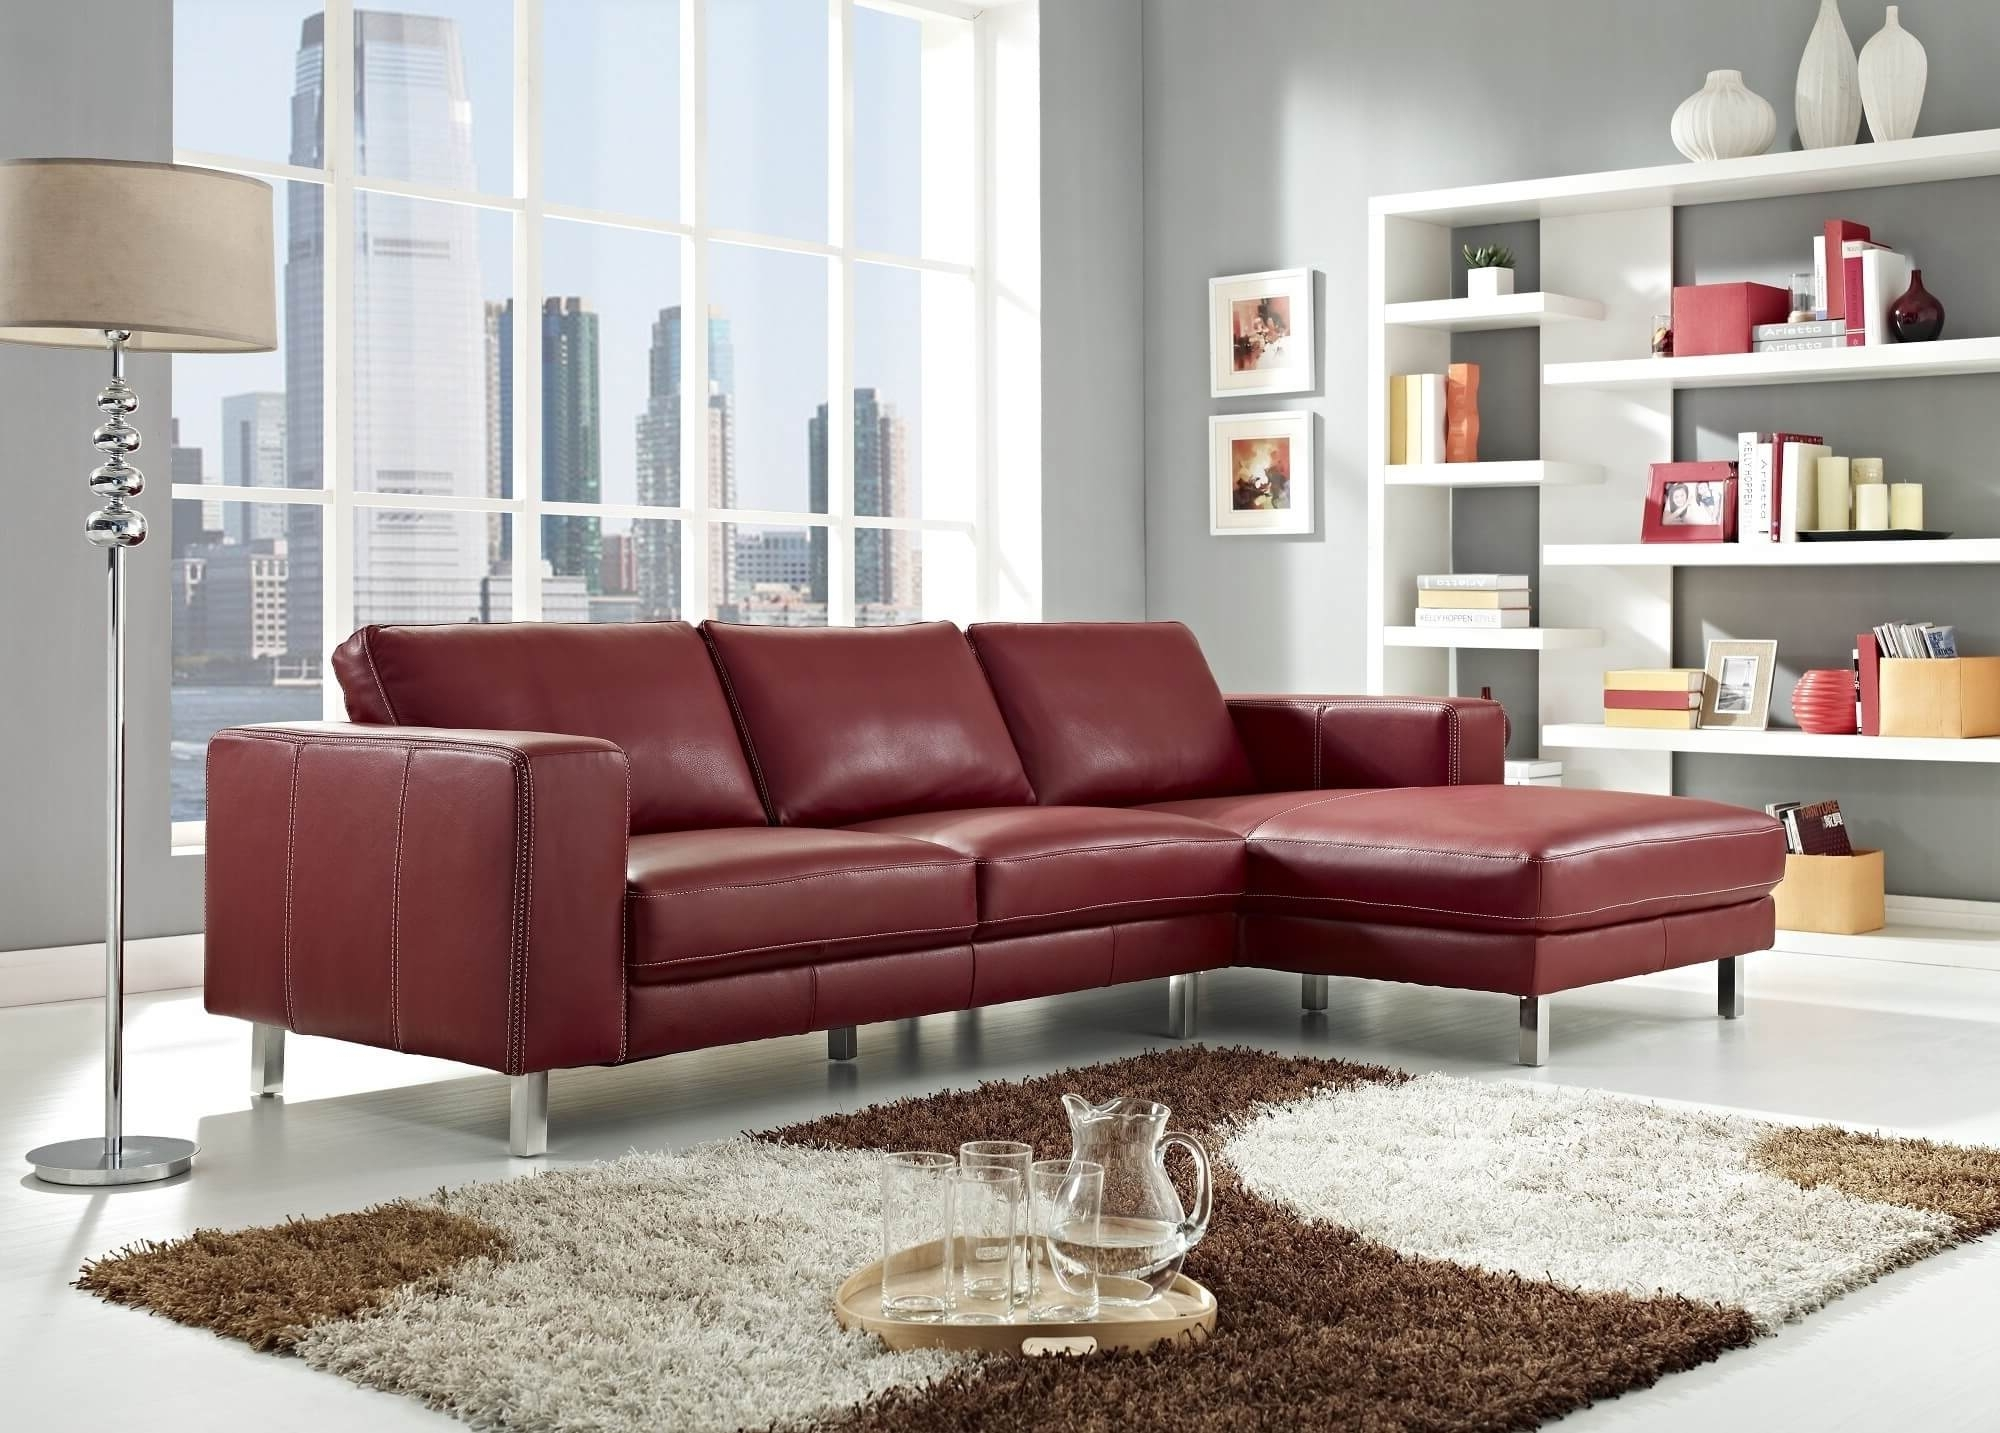 Stylish Modern Red Sectional Sofas Within 2018 Elegant Sectional Sofas (View 13 of 20)